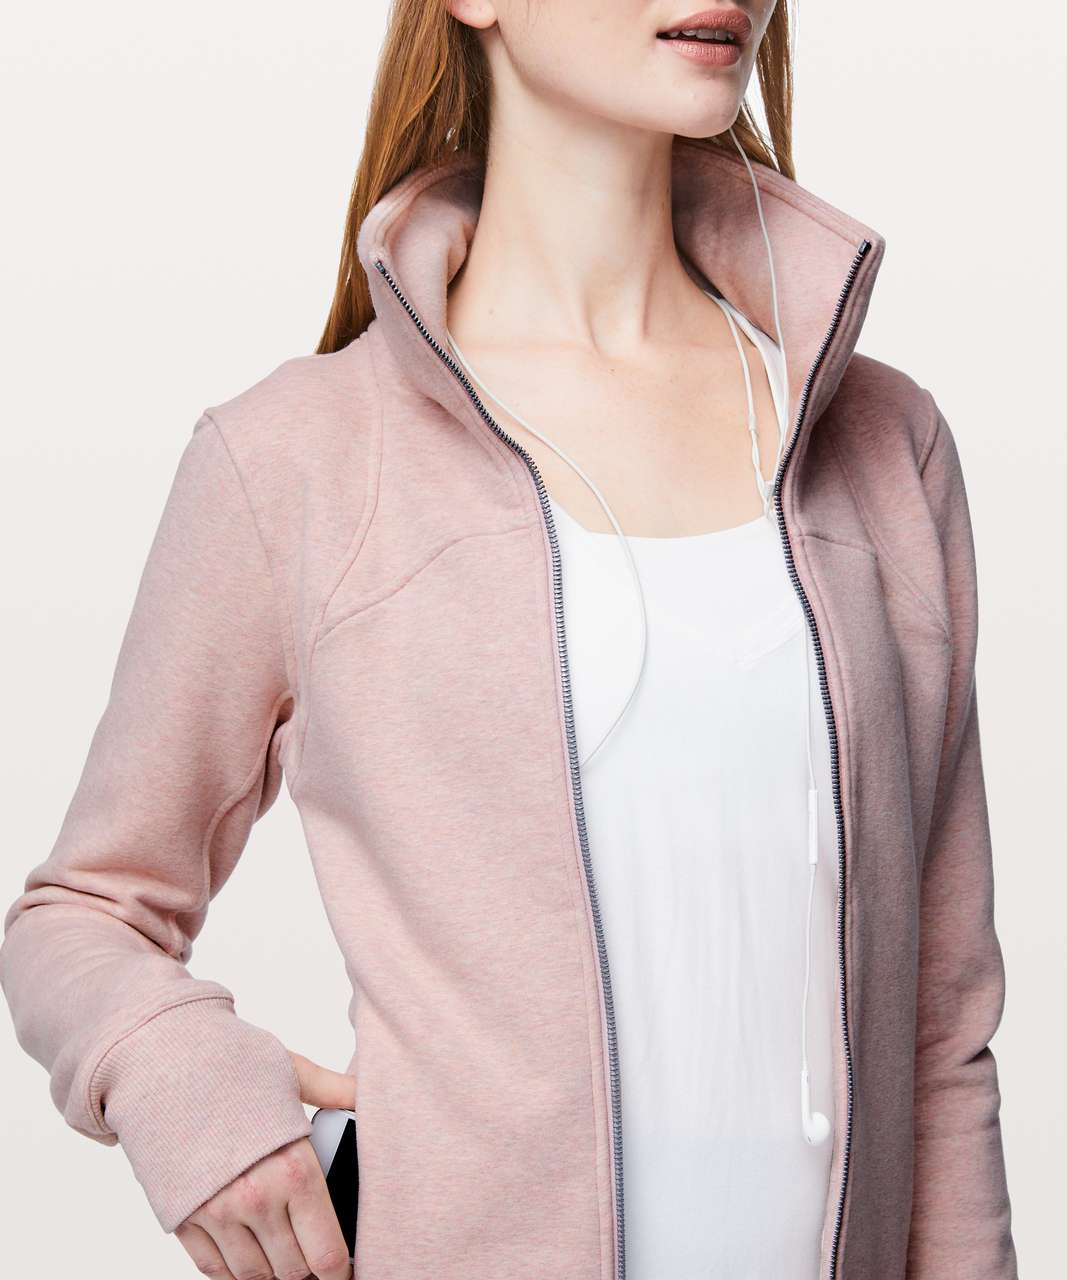 Lululemon Moving Meditation Jacket - Heathered Mink Berry / Mink Berry